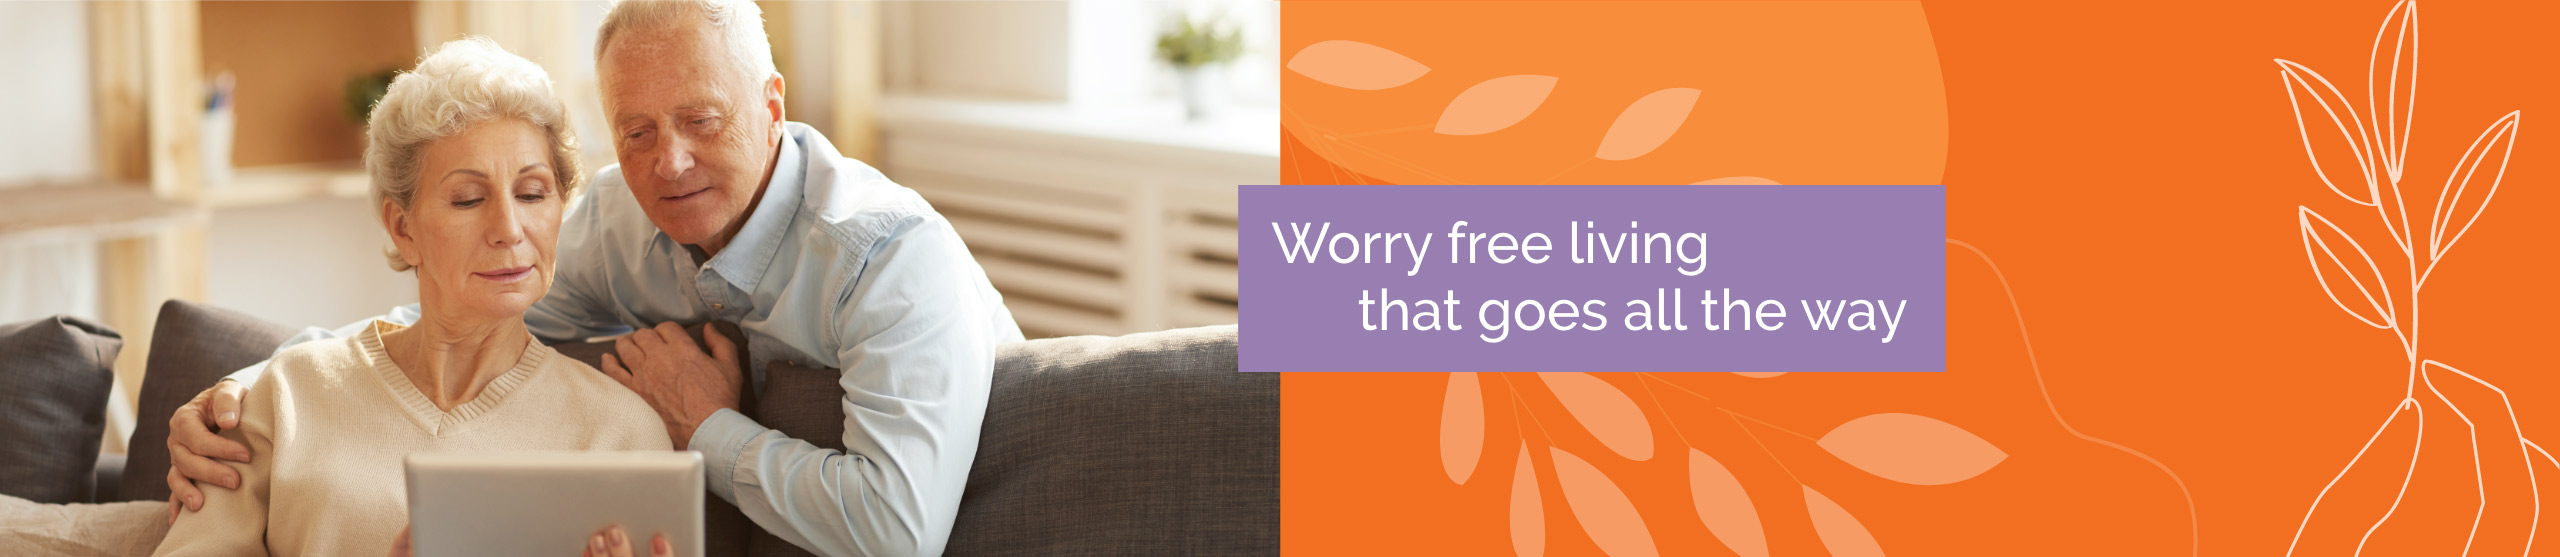 Worry free living that goes all the way